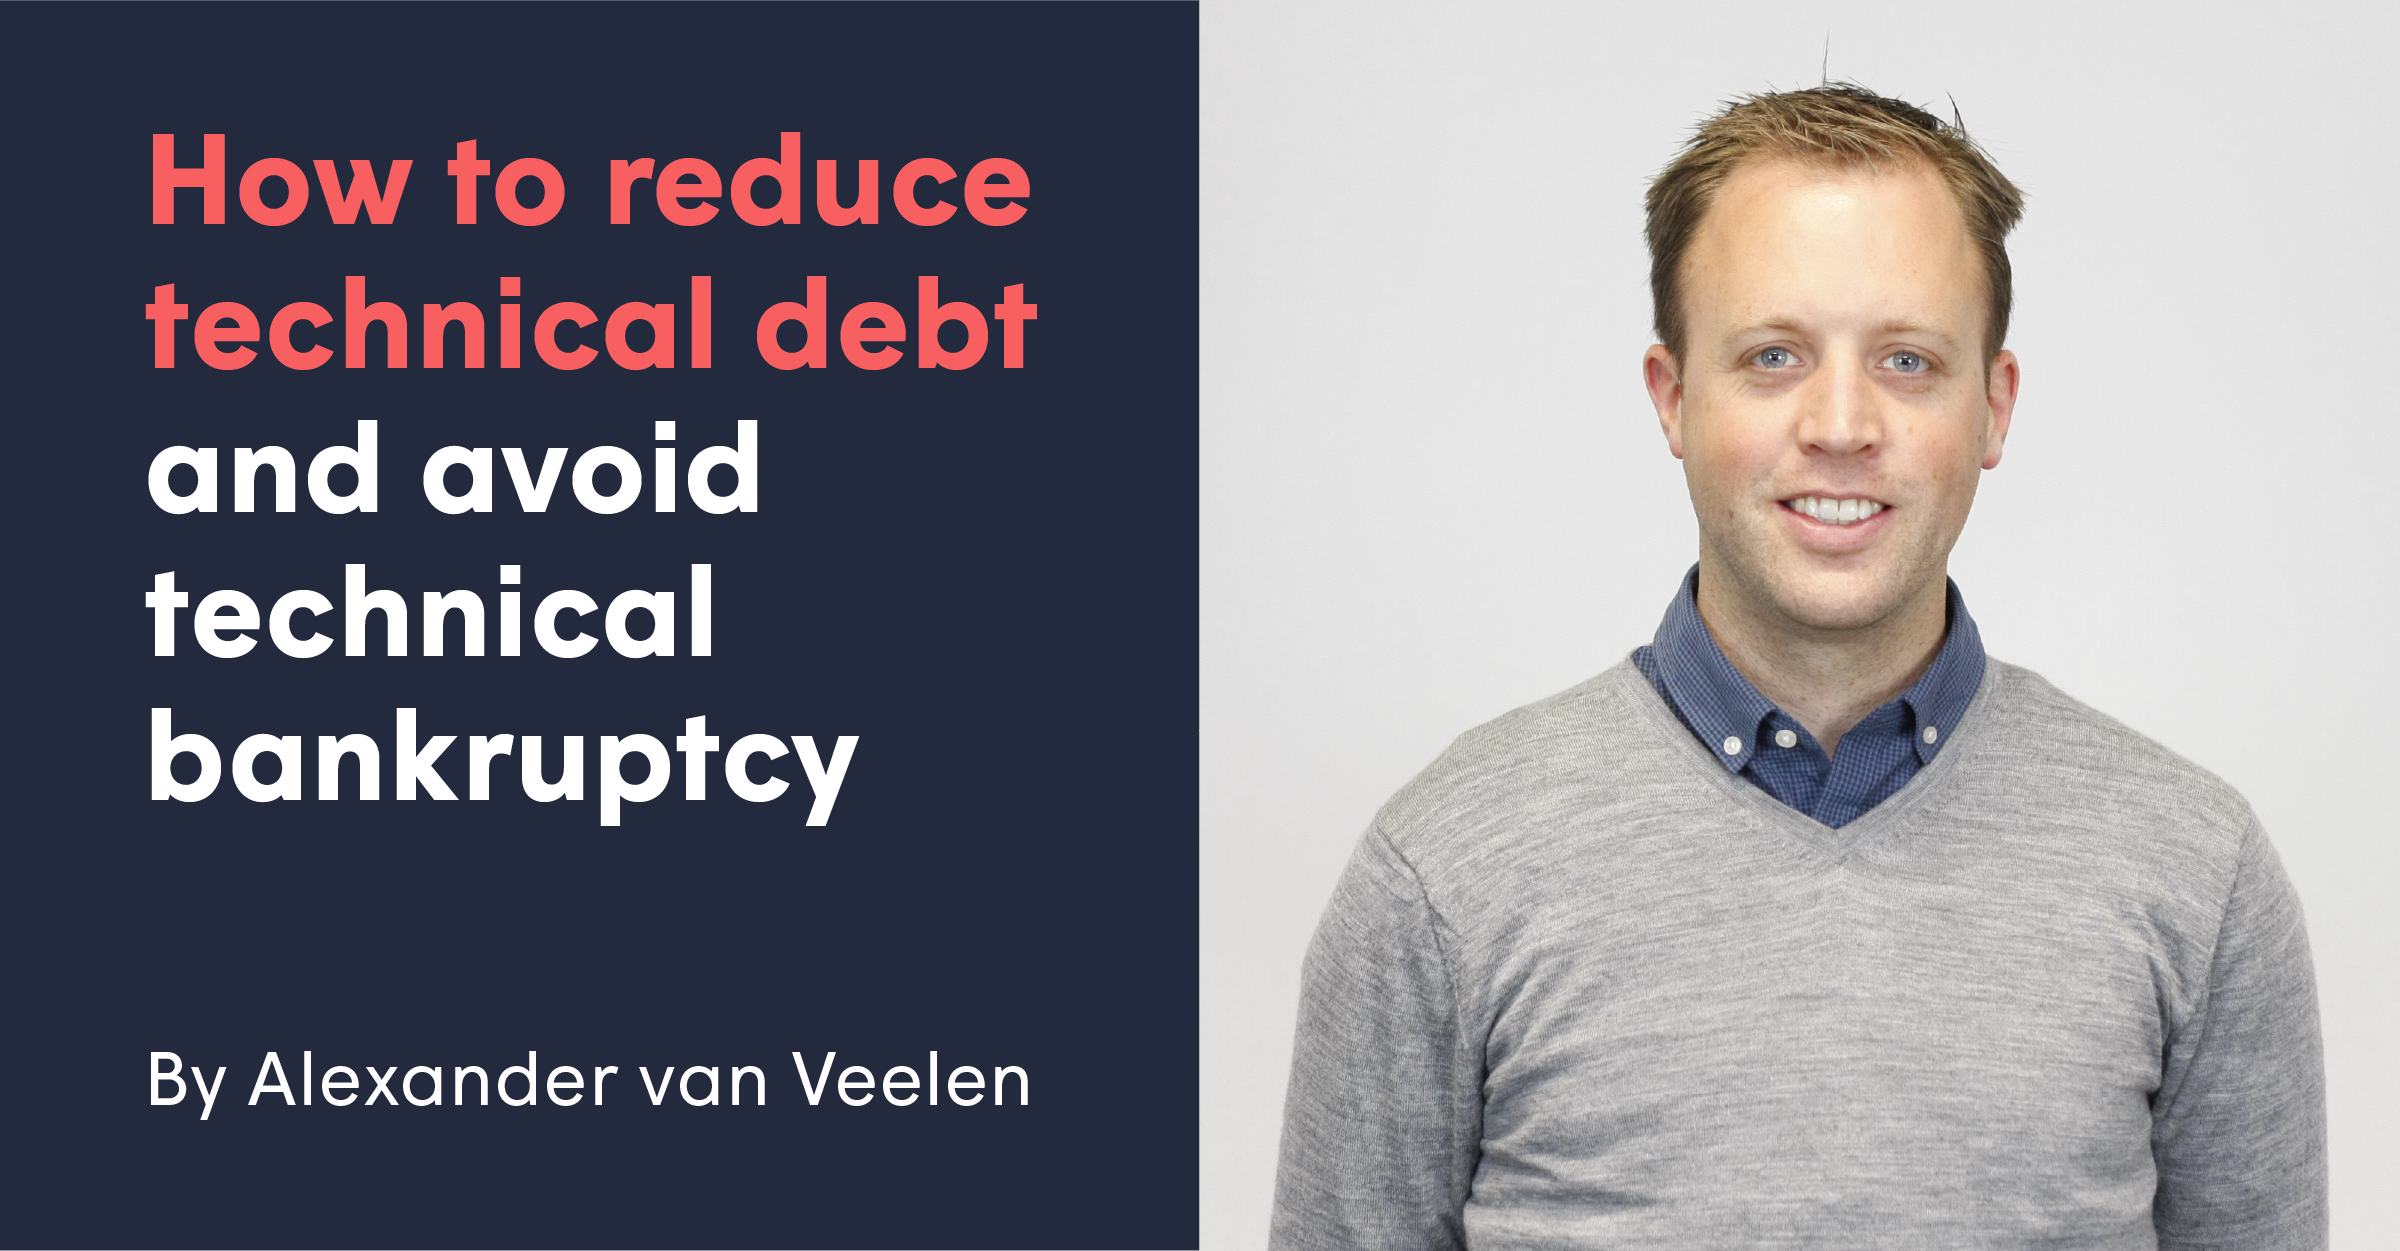 share image for the article How to reduce technical debt and avoid technical bankruptcy